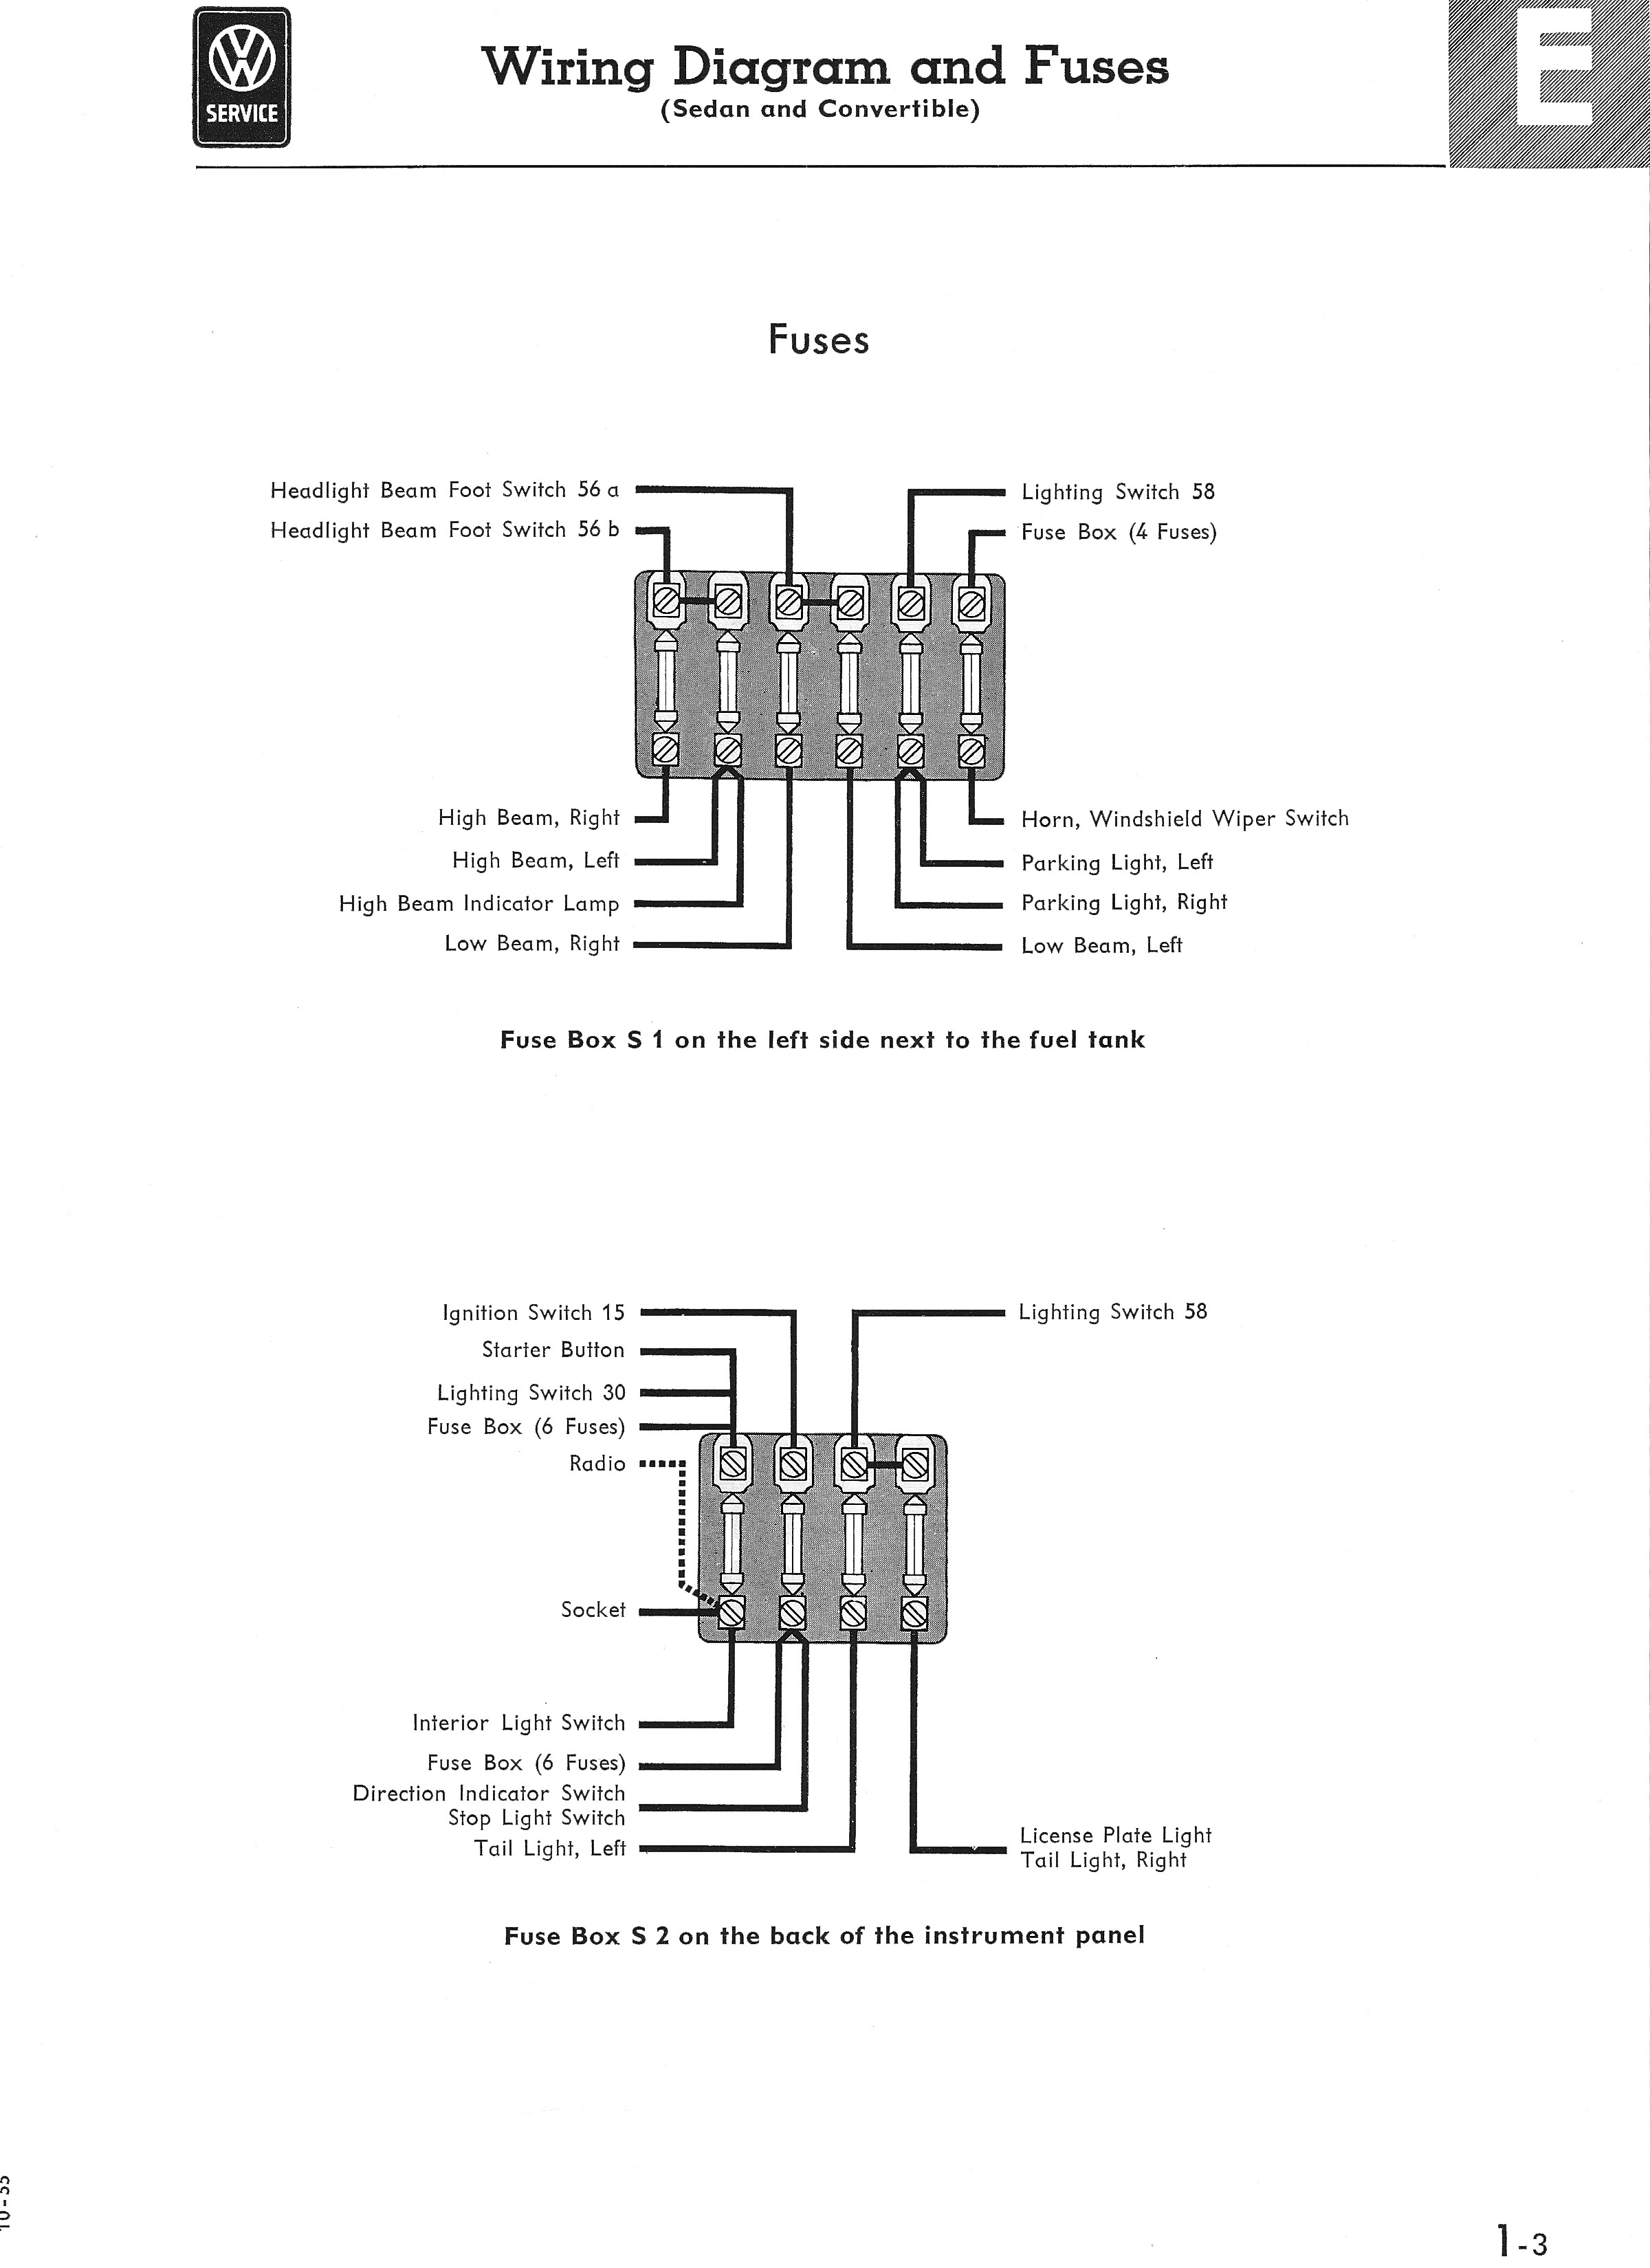 Type 1 Wiring Diagrams Wire Harness Types